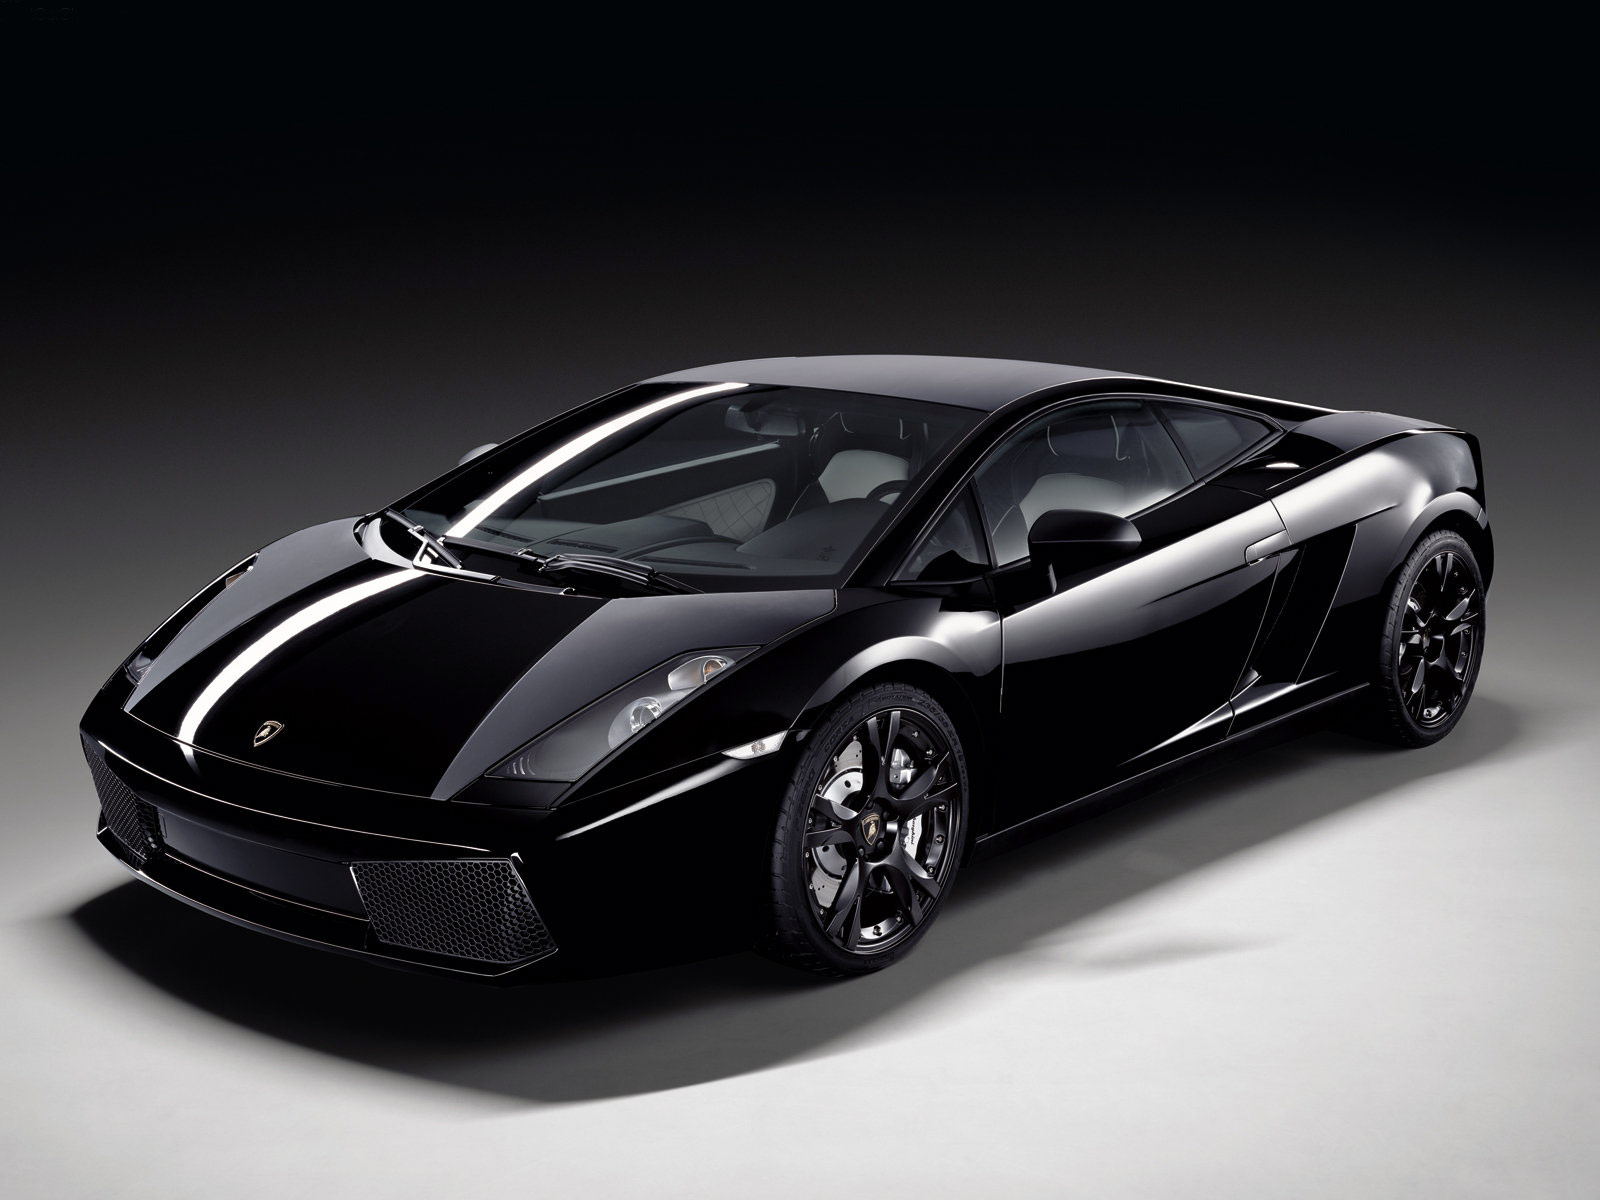 2007 LAMBORGHINI Gallardo Nera accident lawyers info, wallpapers ...